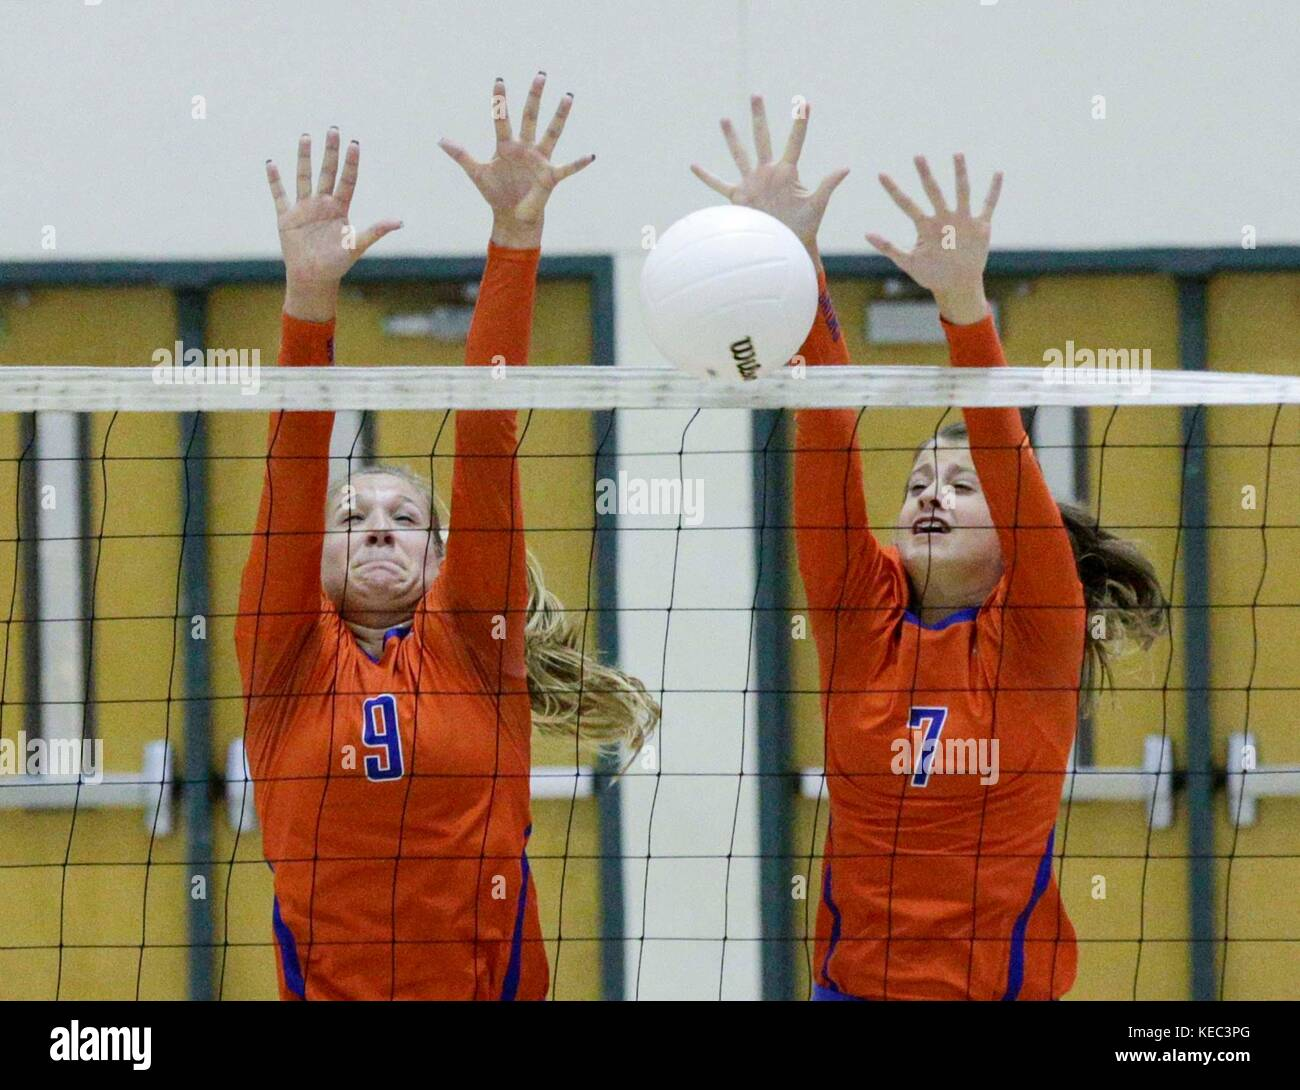 Florida, USA. 19th Oct, 2017. Palm Beach Gardens High School's #9 Cassie Anderson and #7 Kayla Thompson during - Stock Image